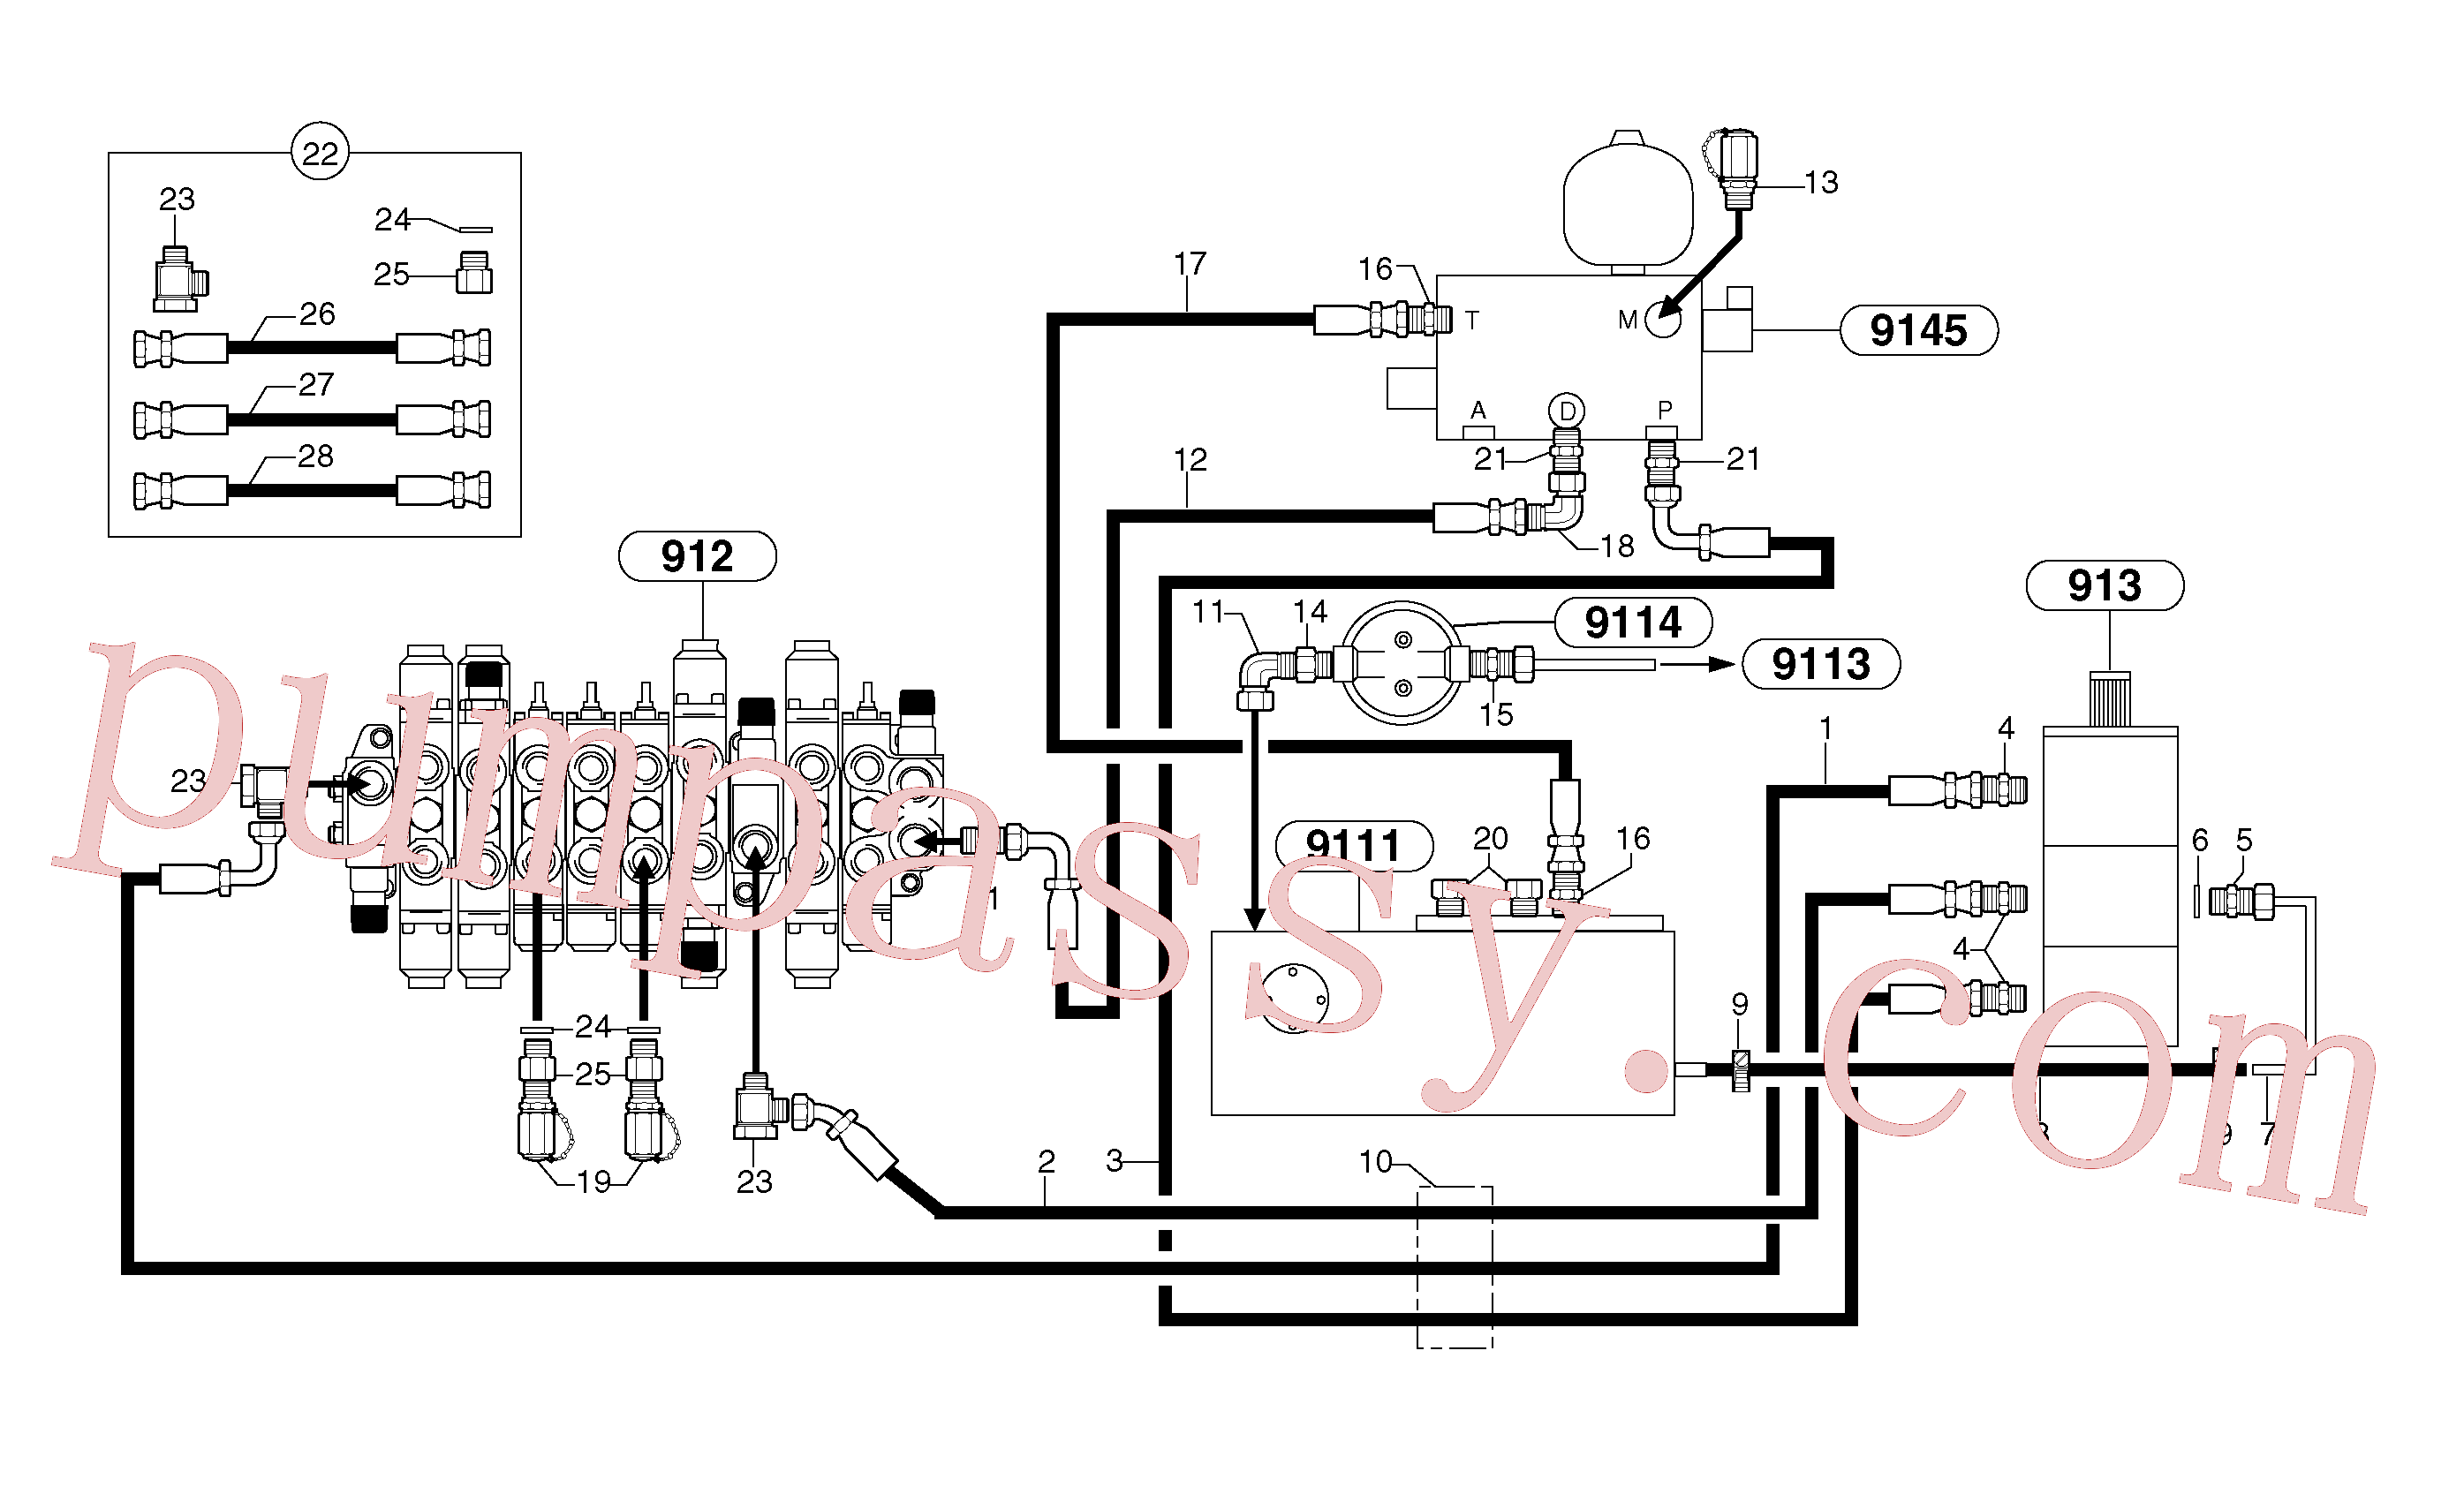 PJ4740033 for Volvo Attachments supply and return circuit(9112X1 assembly)